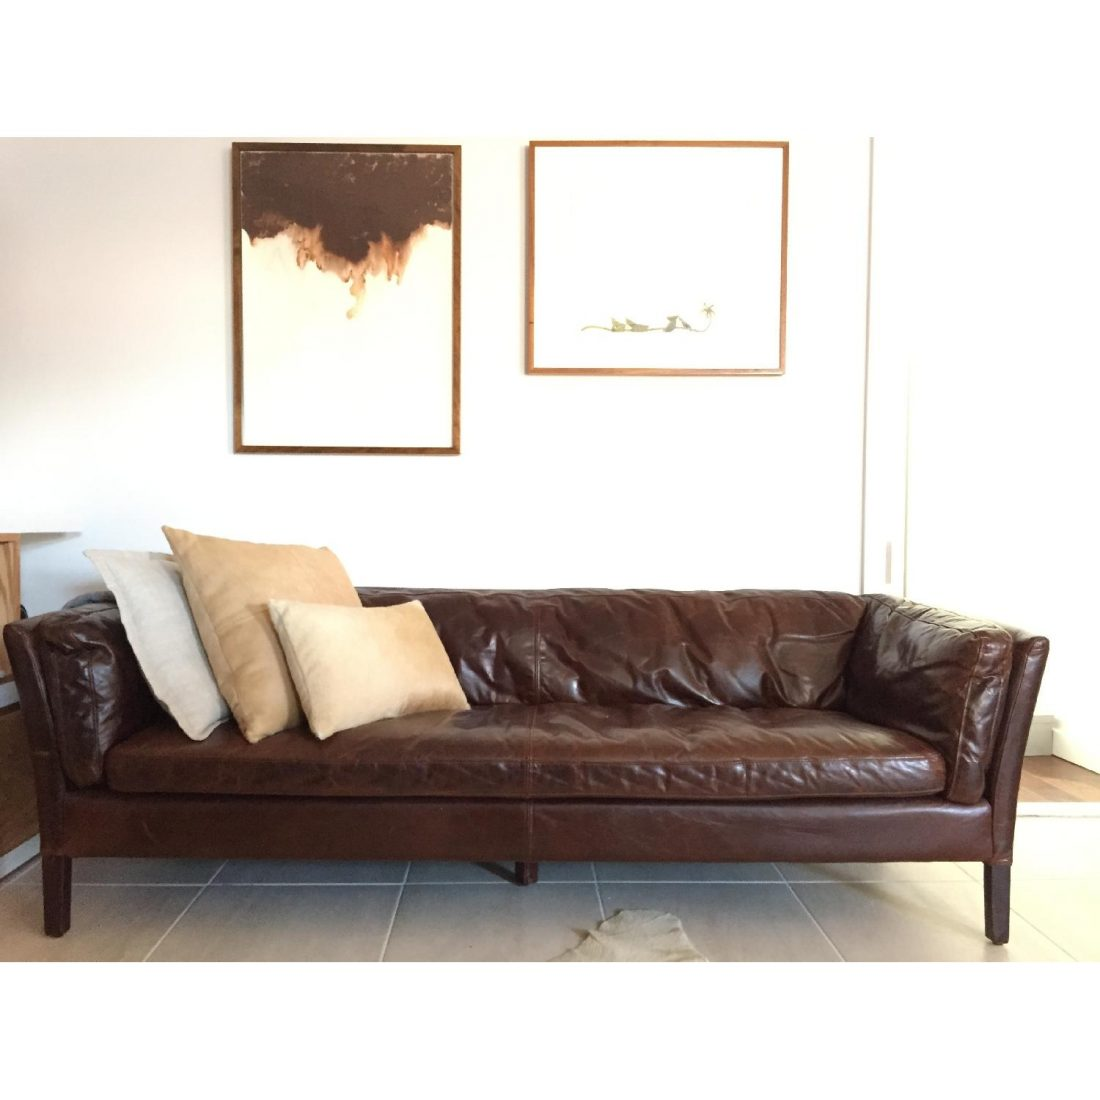 fulham sofa rh beds and futons cheap leather restoration hardware collections